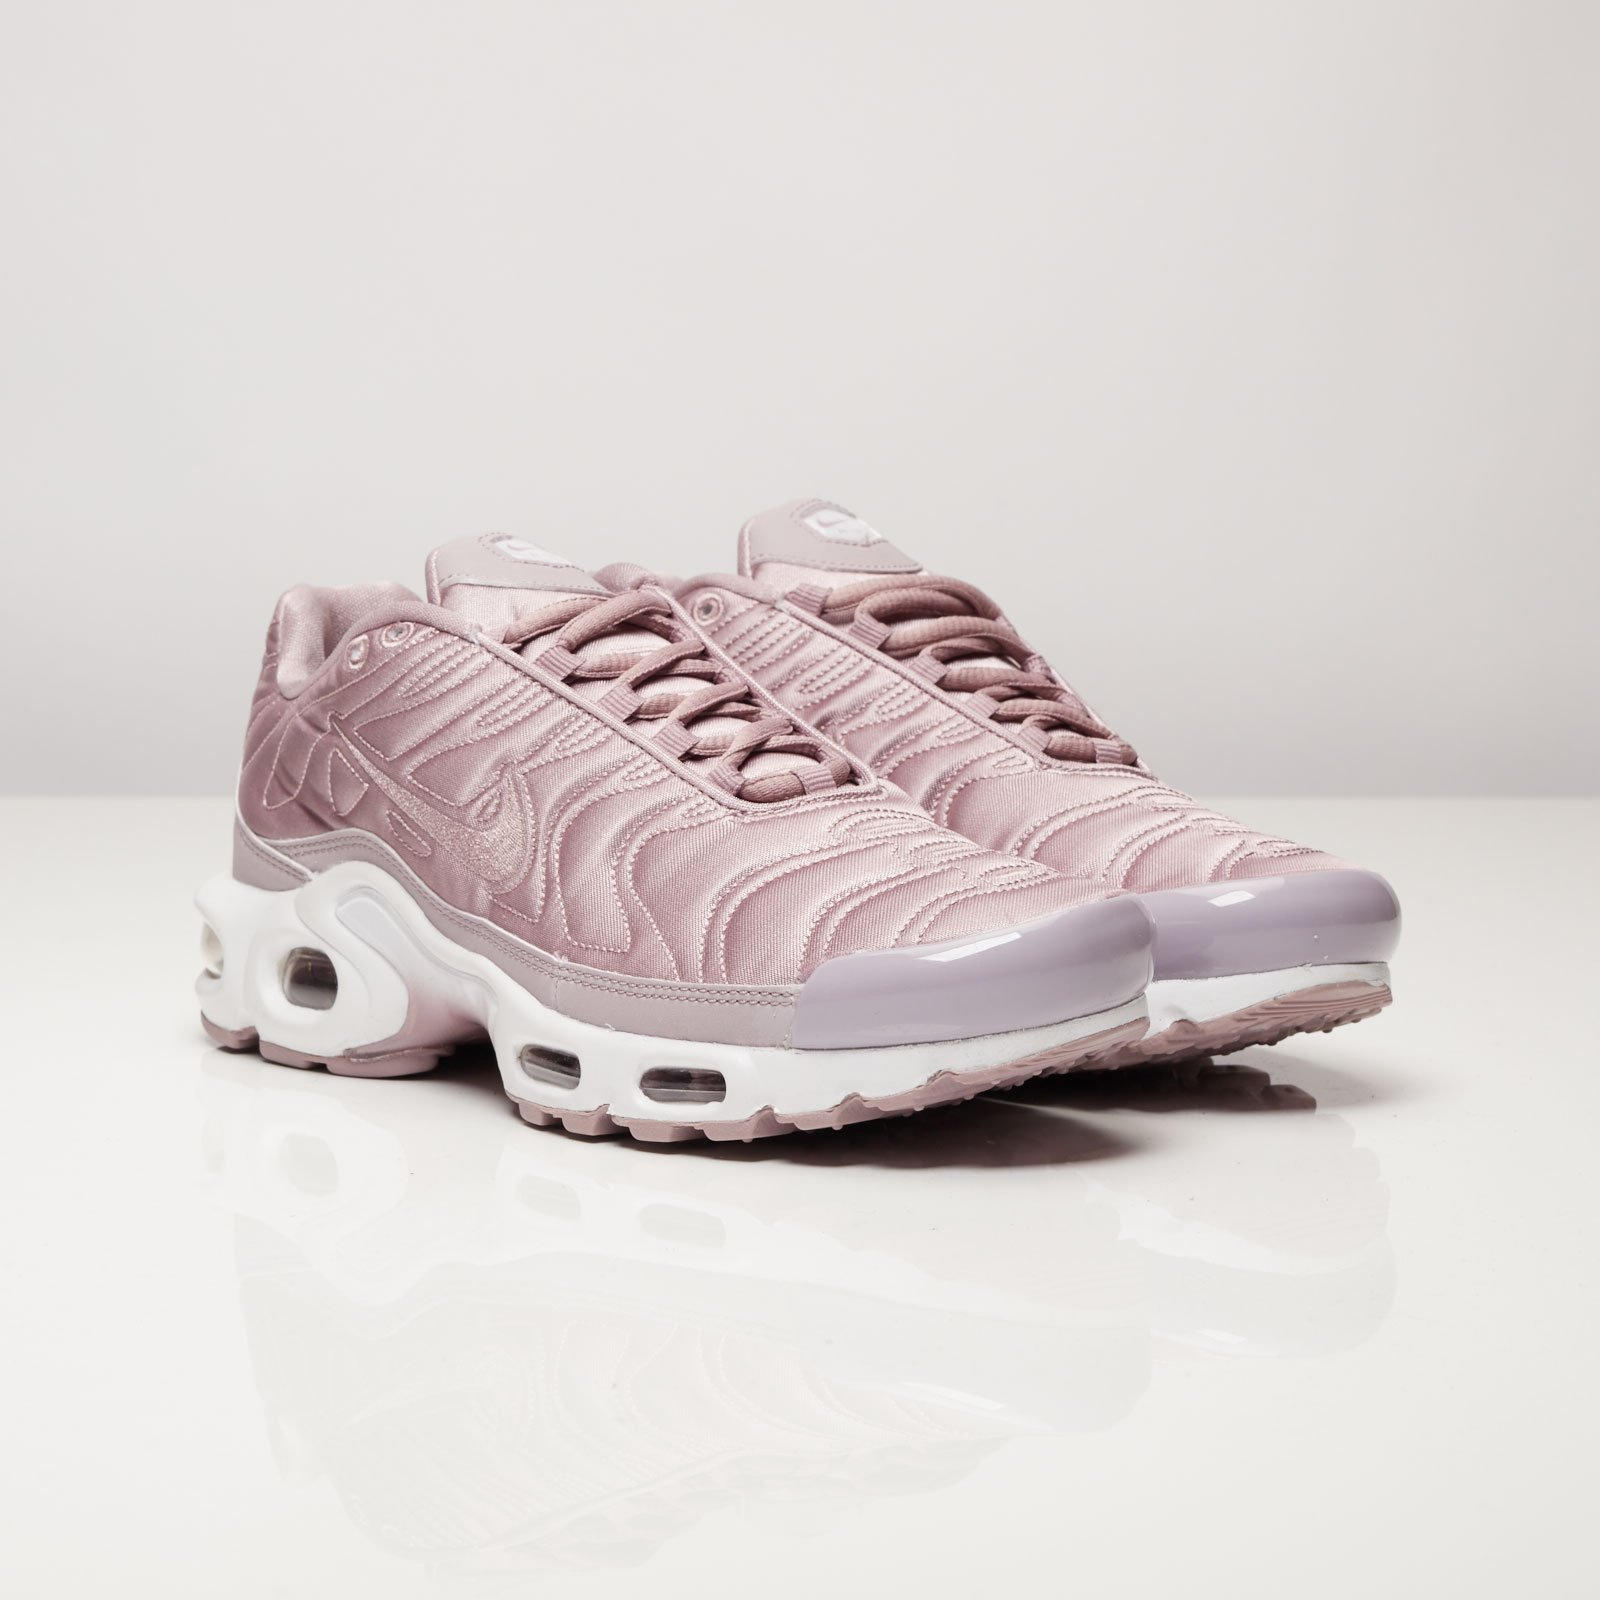 detailed look aefaf 9de33 Nike Wmns Air Max Plus SE